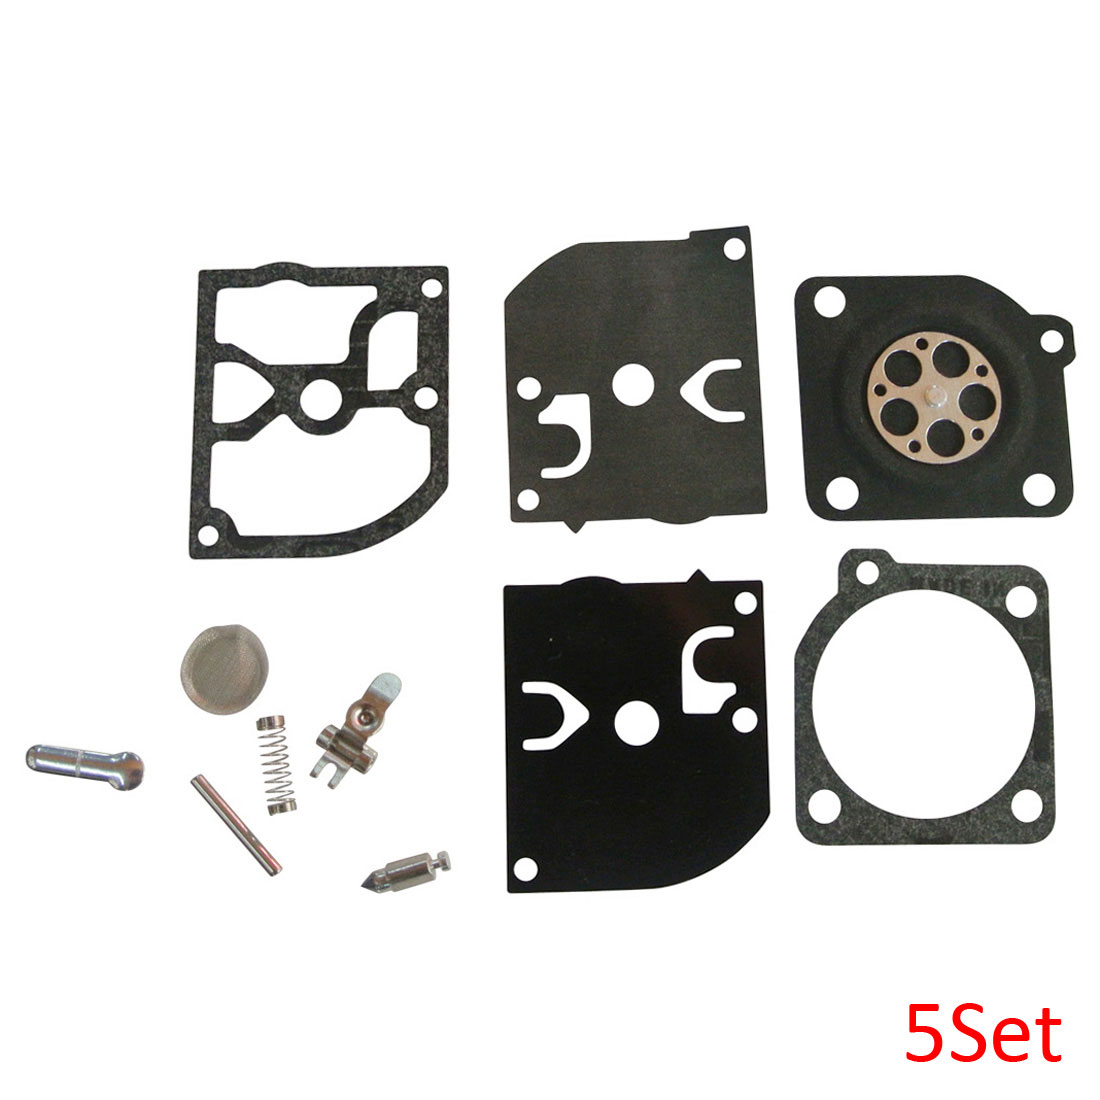 Carb Repair For ZAMA RB-39 Kit For Mcculloch 3214 3216 3516 225 3505 3805 3818 5Set